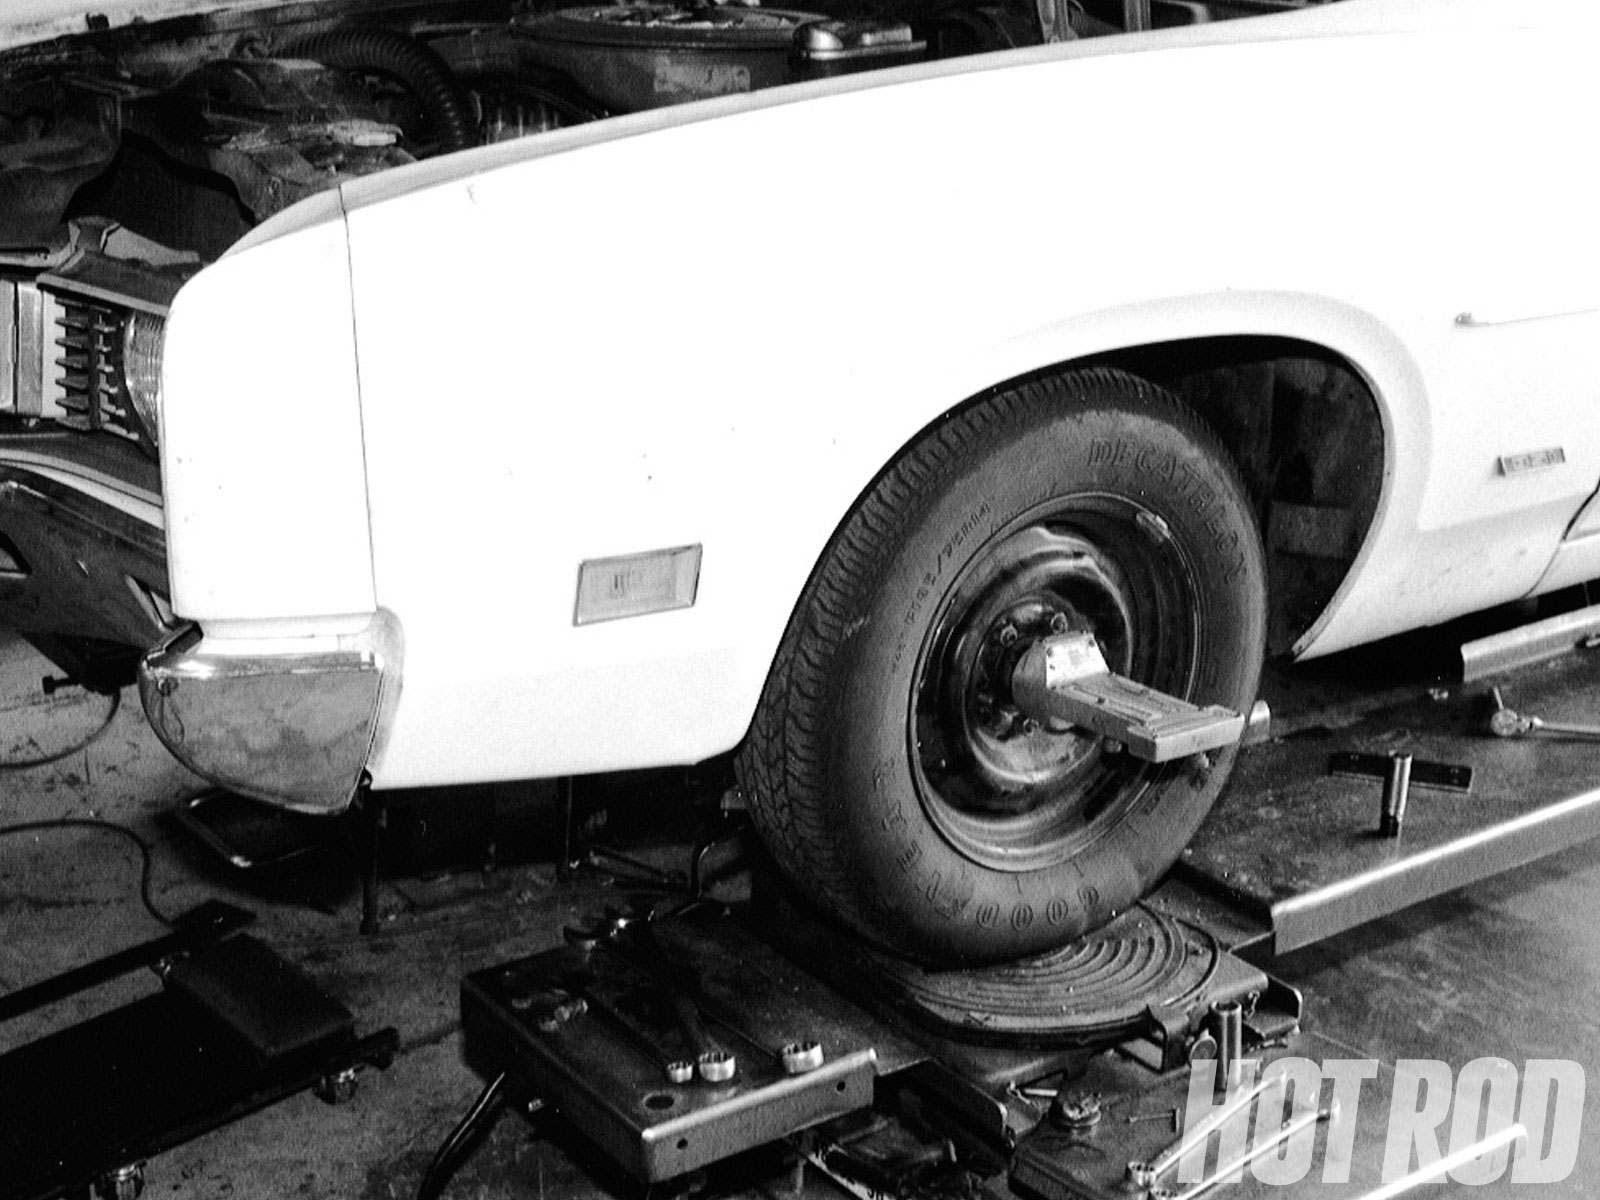 Proper geometry can mean getting the most out of your cornering. A trip to an alignment shop will mean that you will get the most out of your modifications.